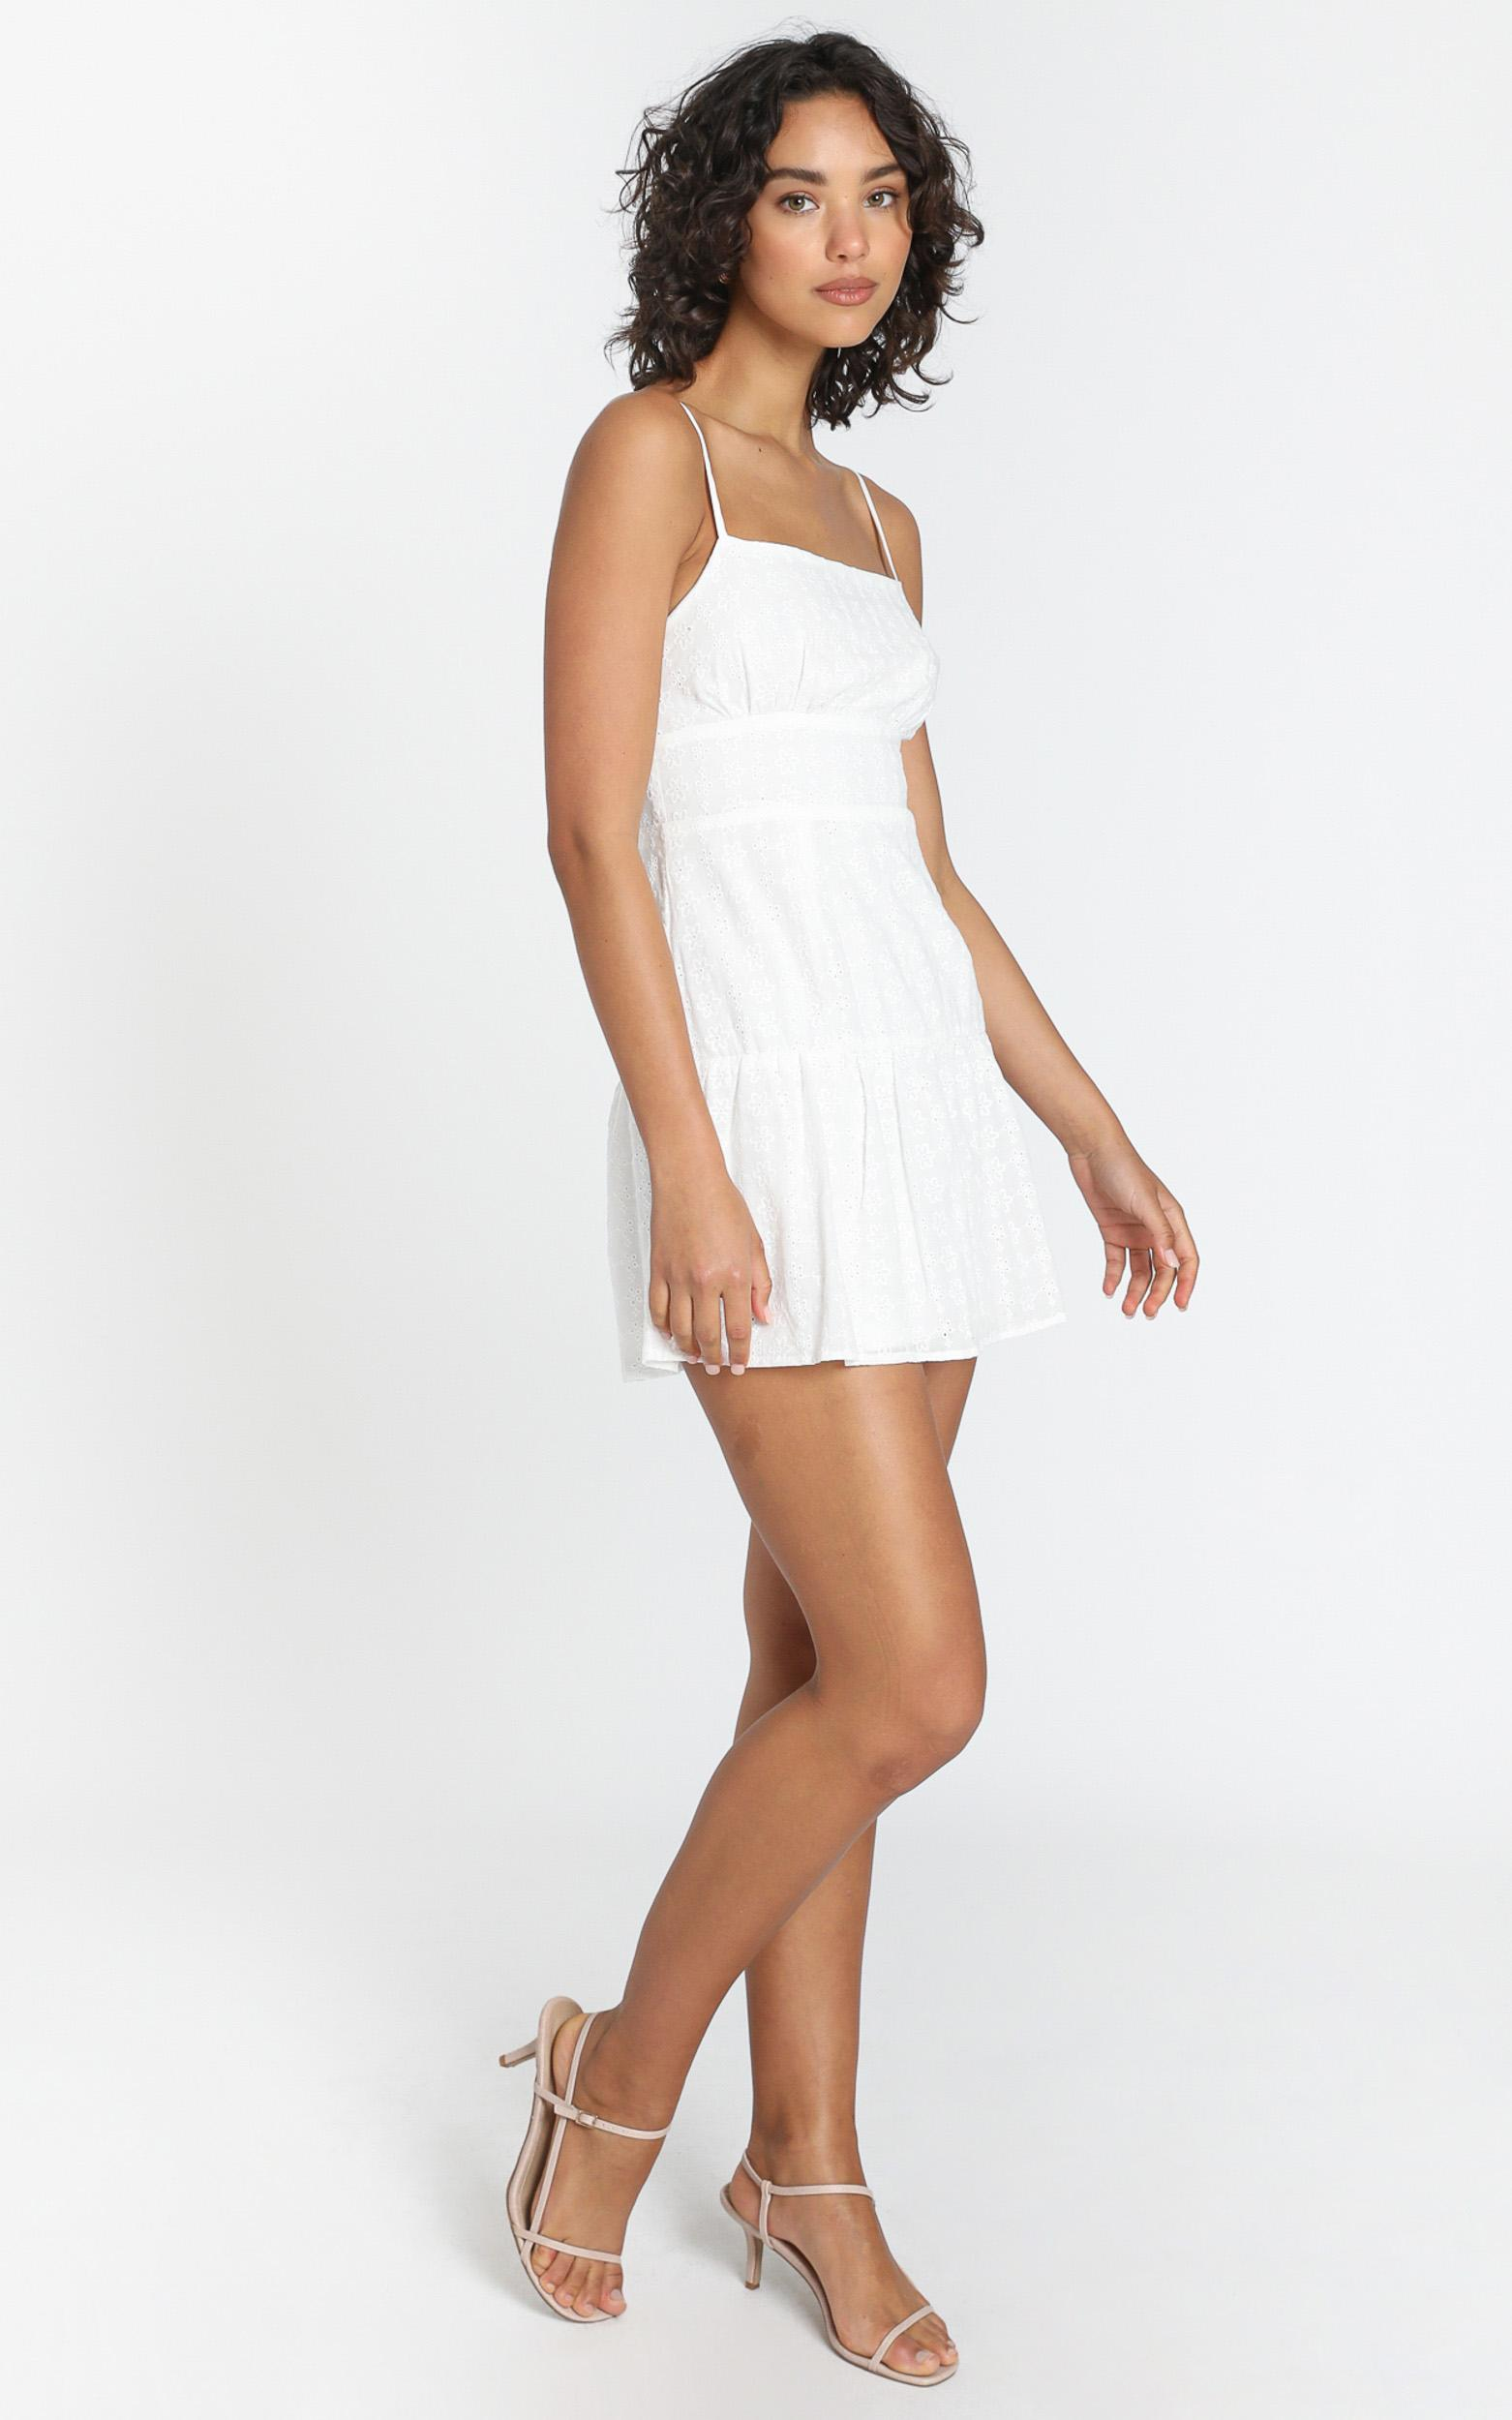 Lotte Dress in White - 6 (XS), White, hi-res image number null